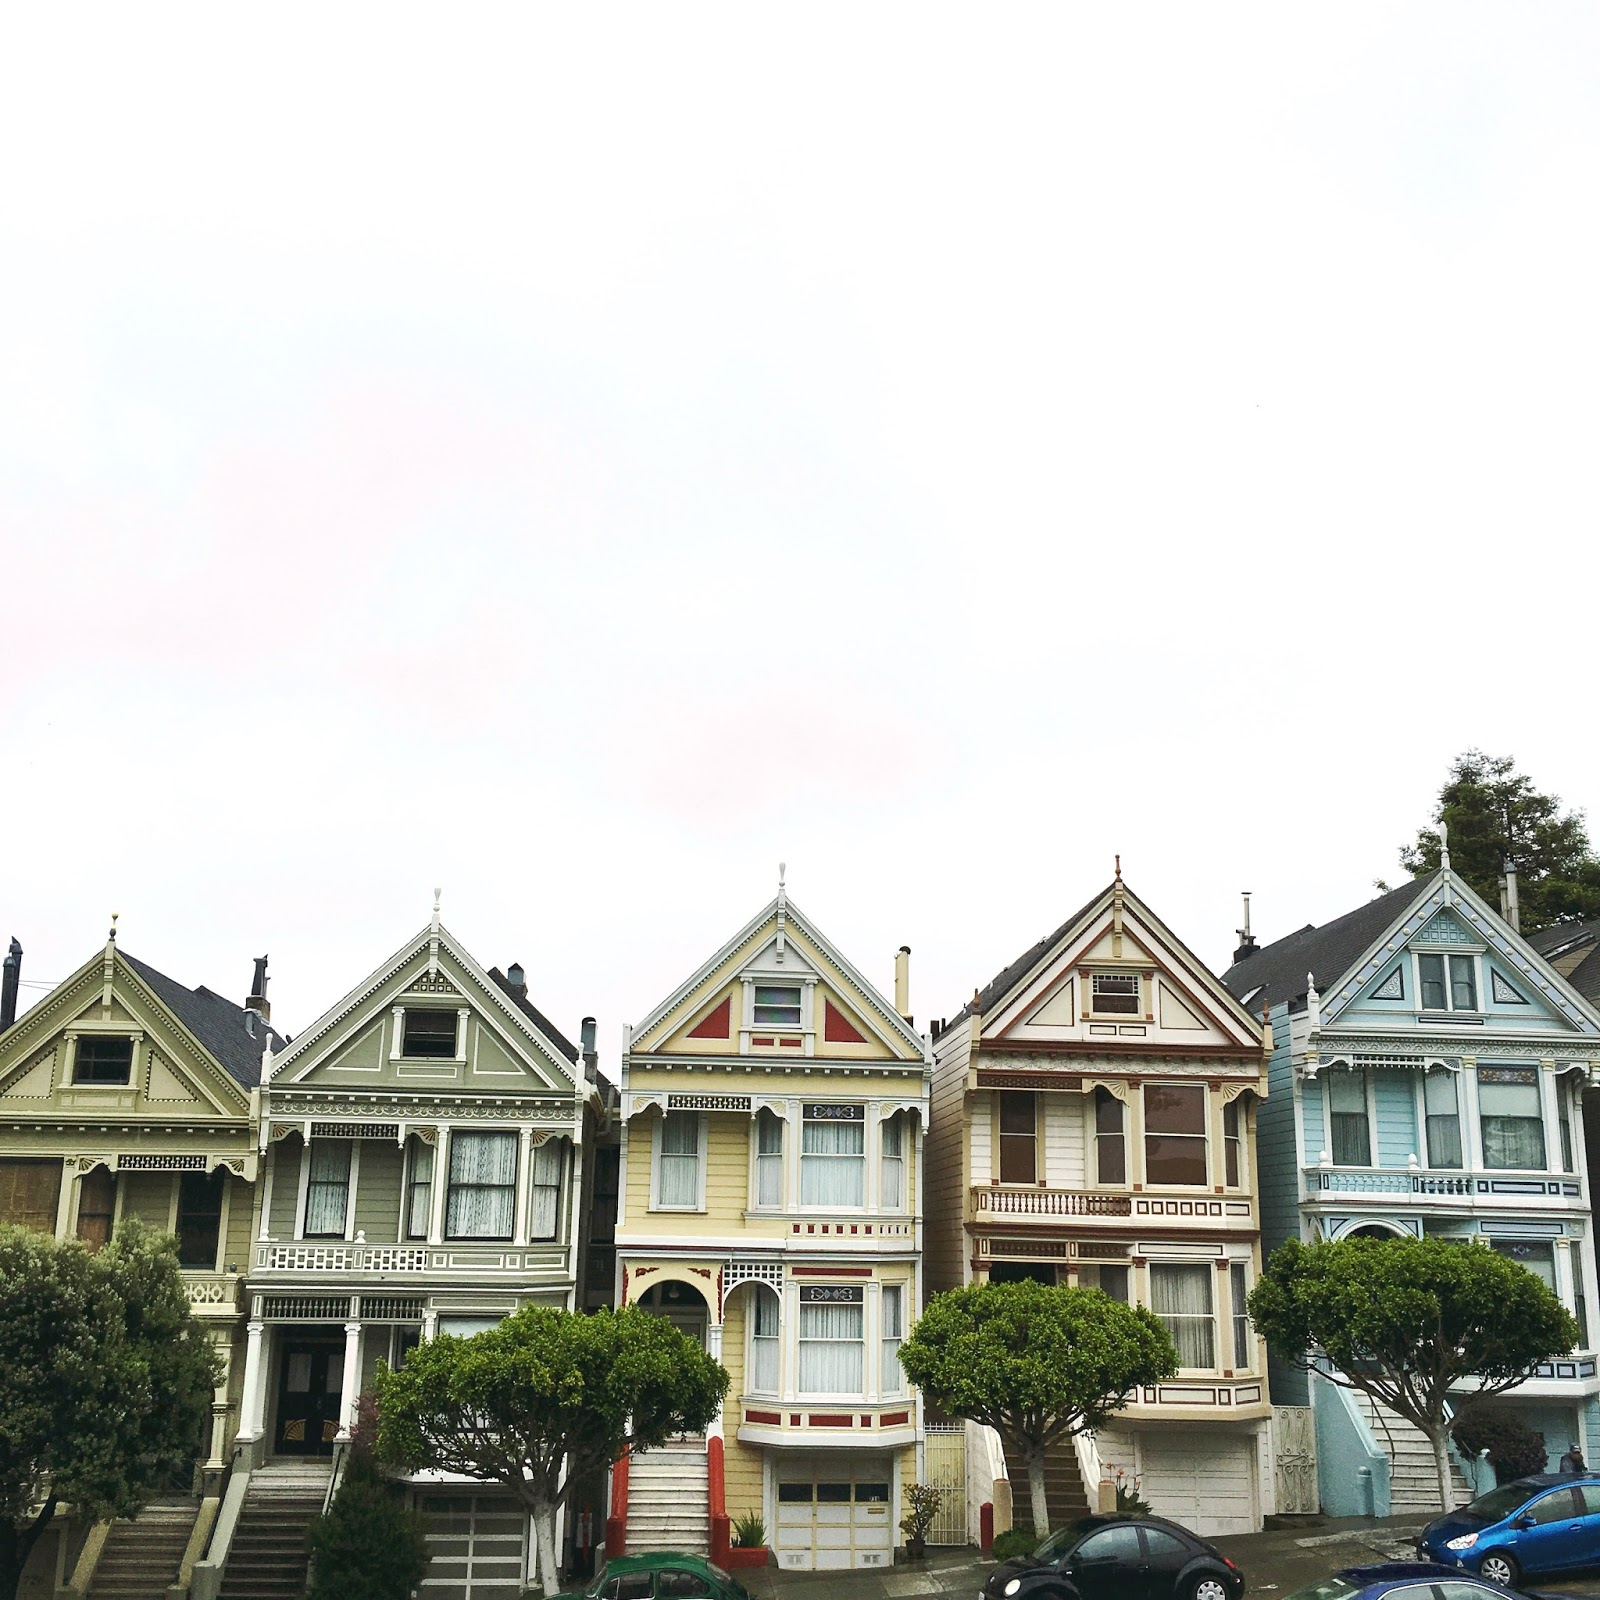 Muted Colors on the painted Ladies bring life to a gloomy day.